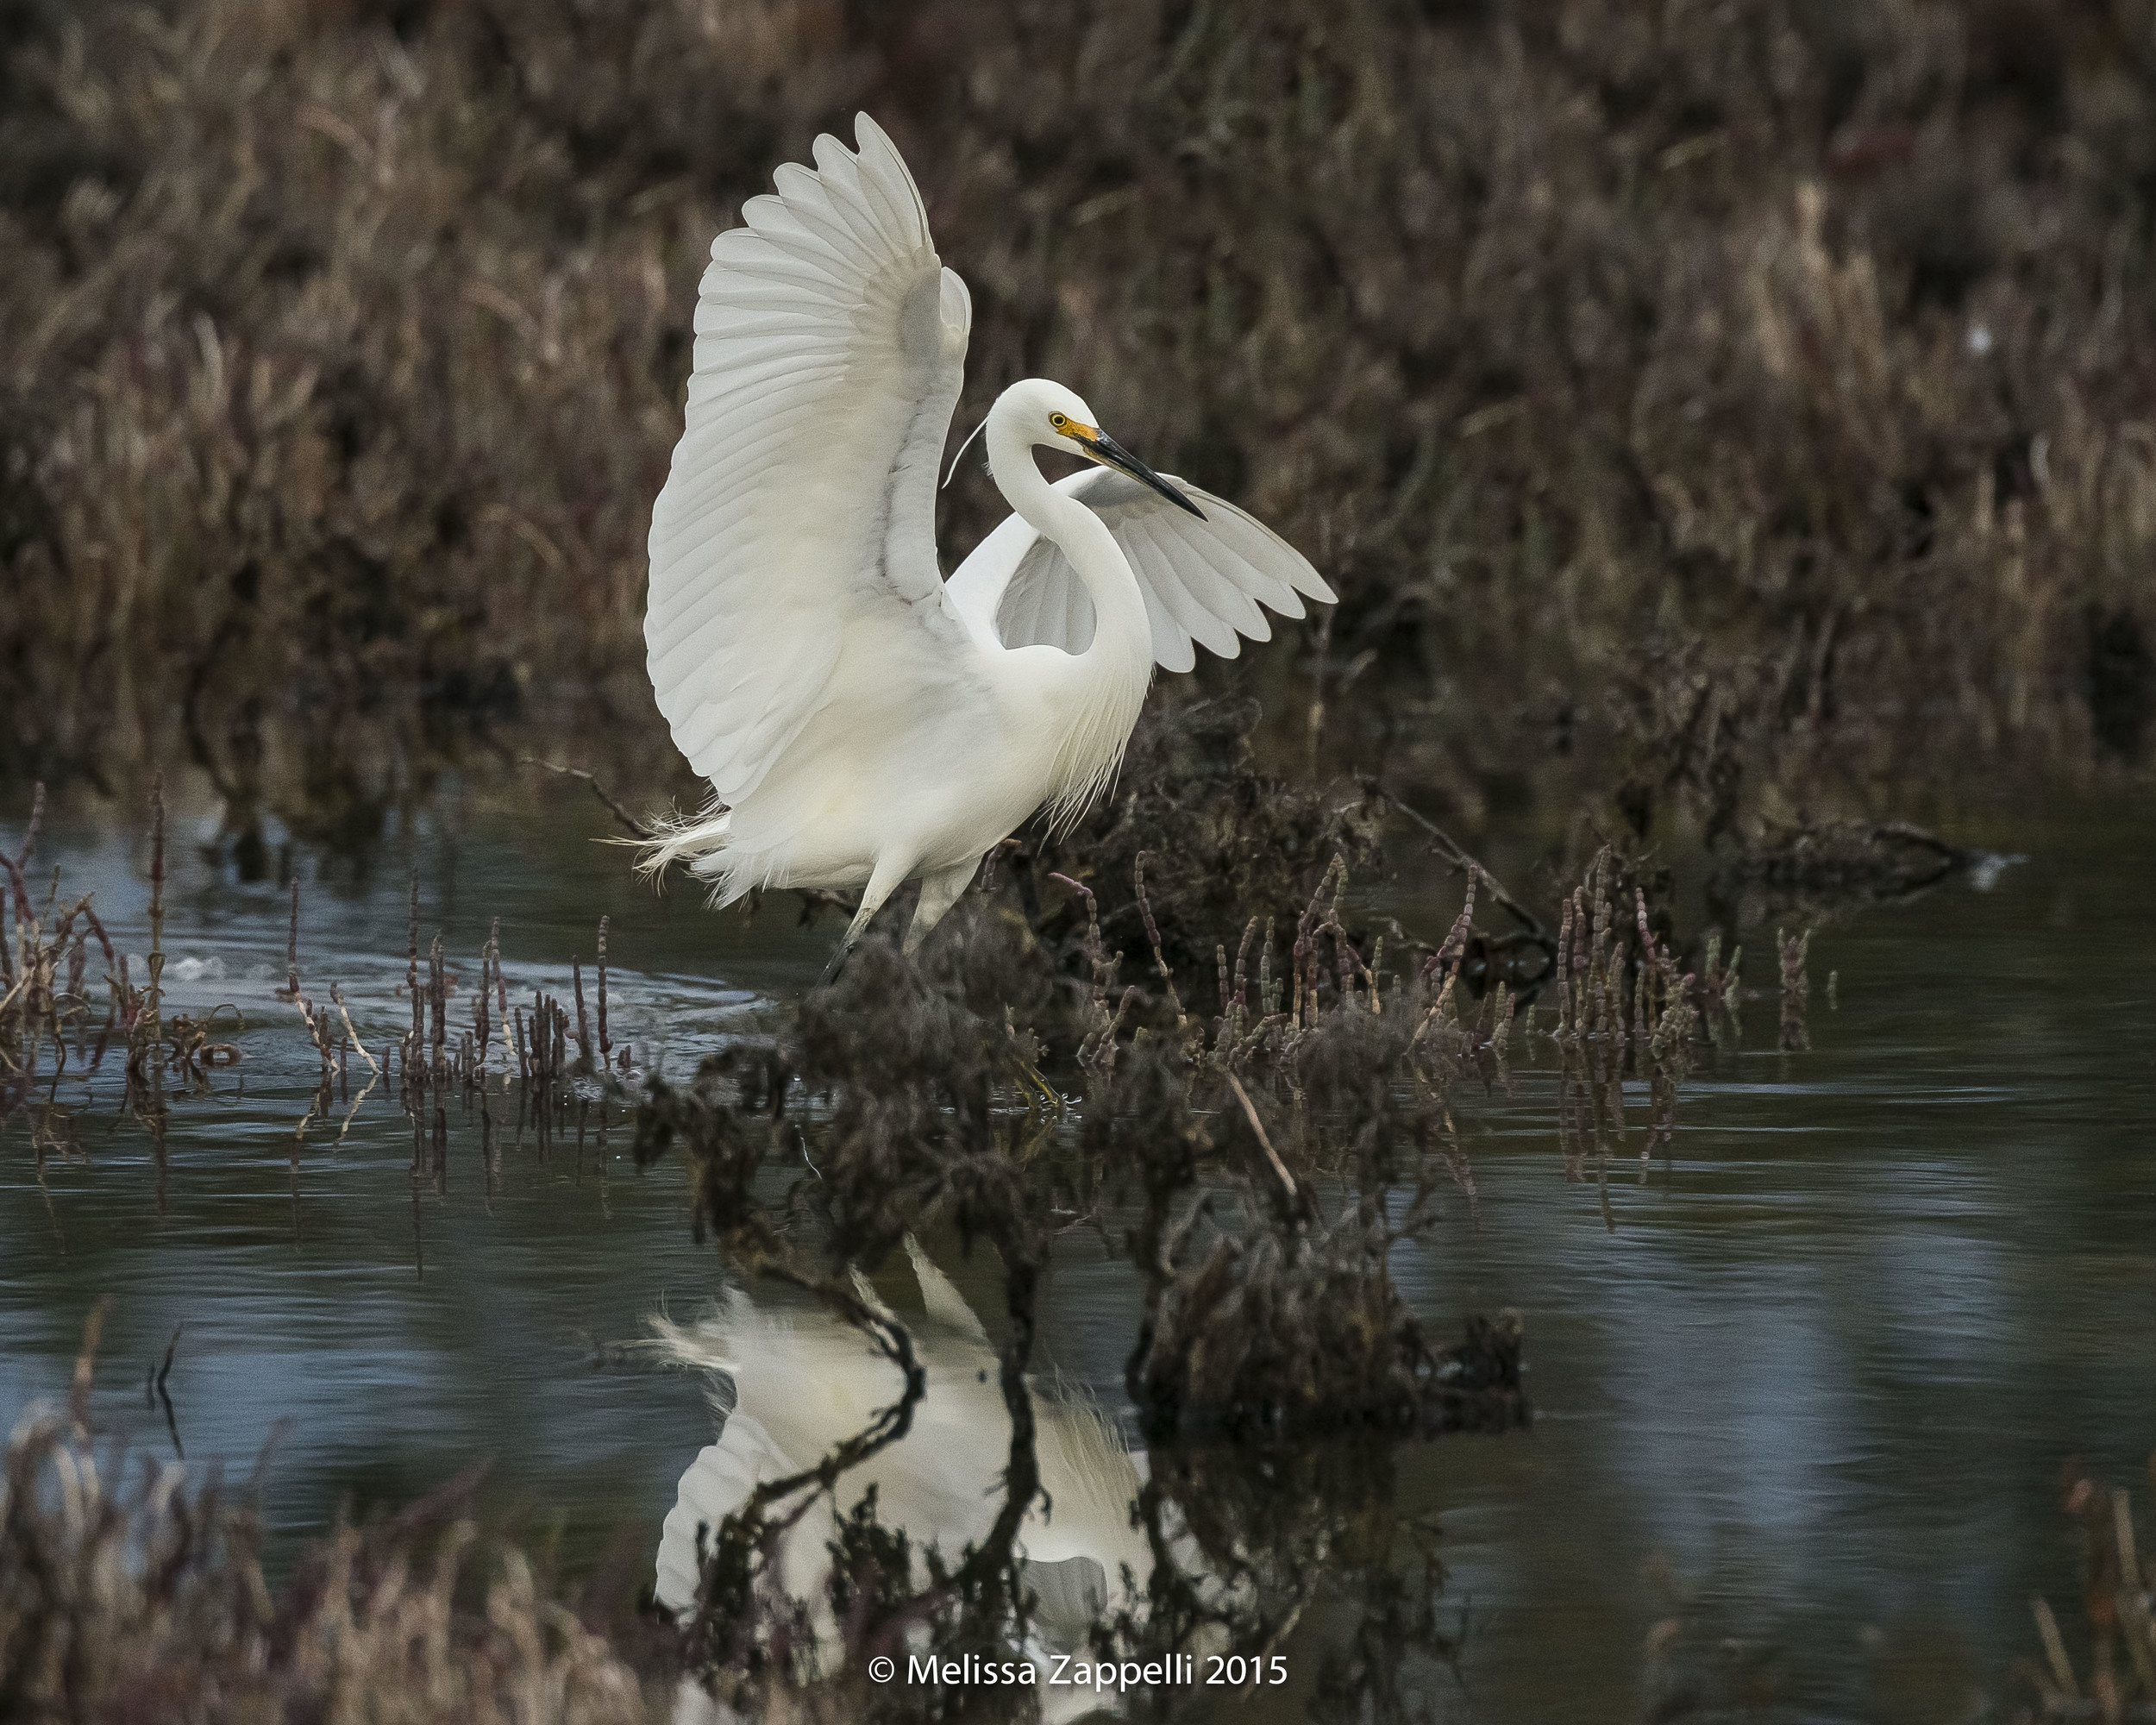 One of my best swamp dwelling friends, A stunning Little Egret at Alfred Cove. I love the contrast between the pure white bird and the dark murky swamp.